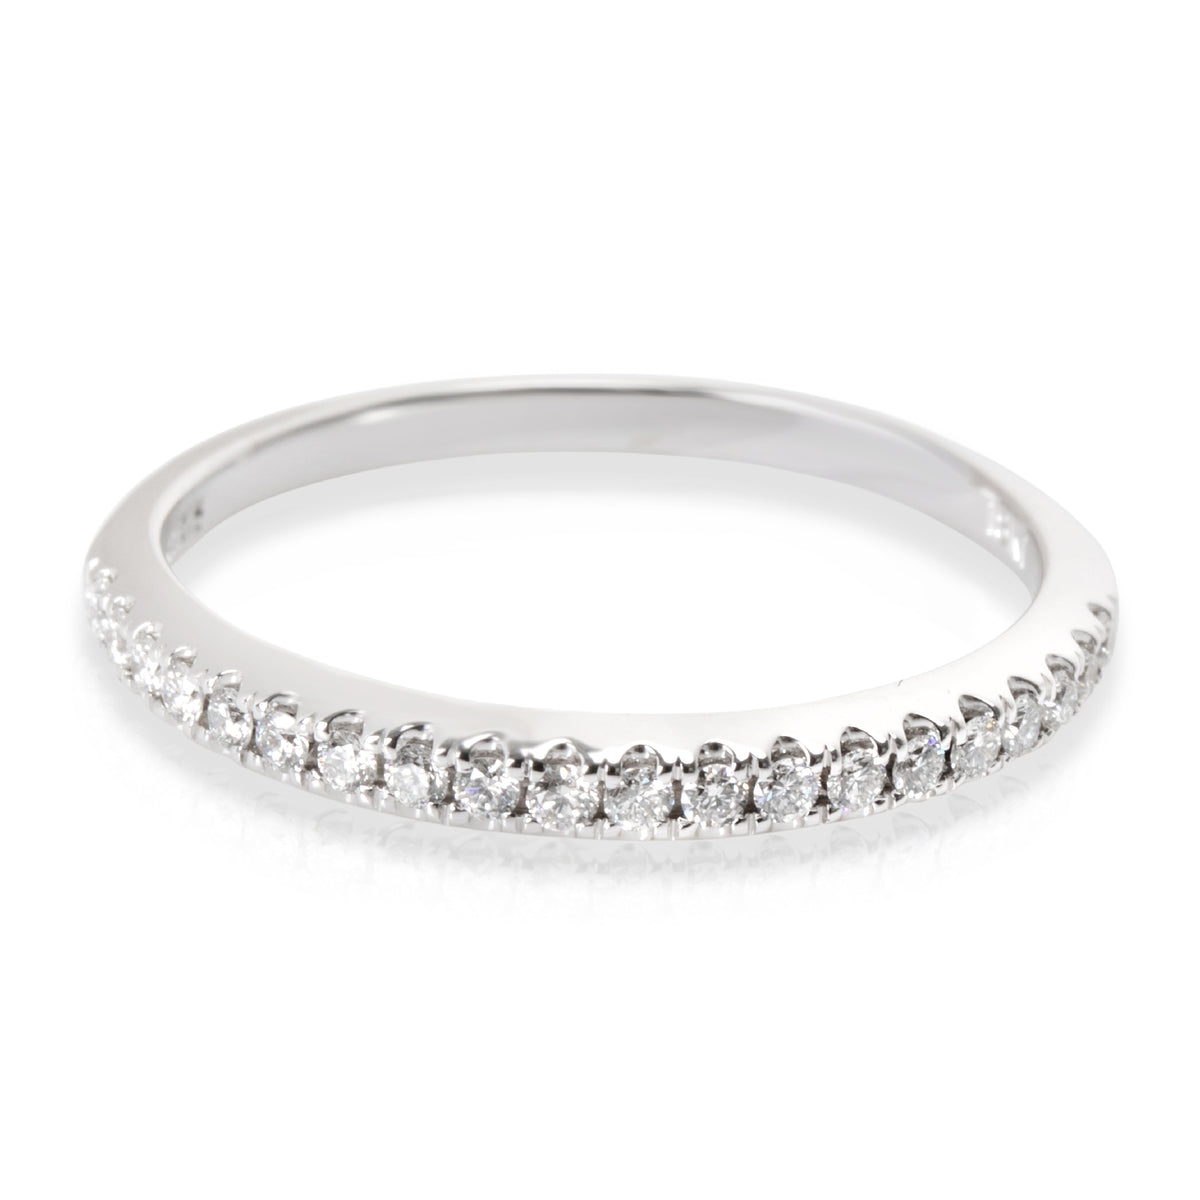 Scott K Diamond Wedding Band in 18K White Gold 0.20 CTW